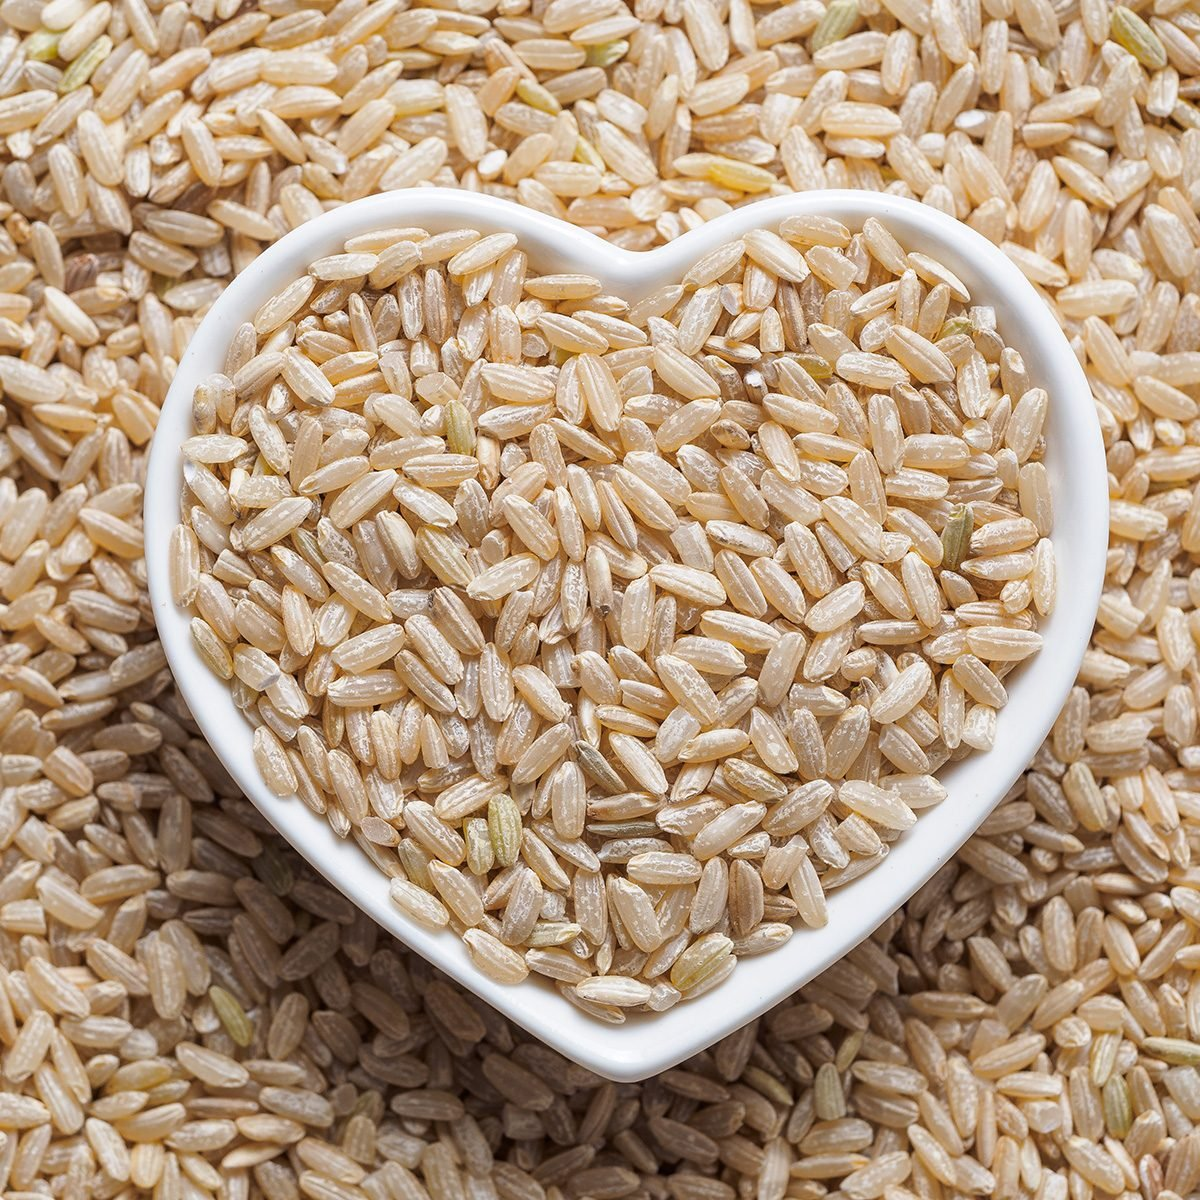 Brown rice in heart-shaped bowl on rice background.